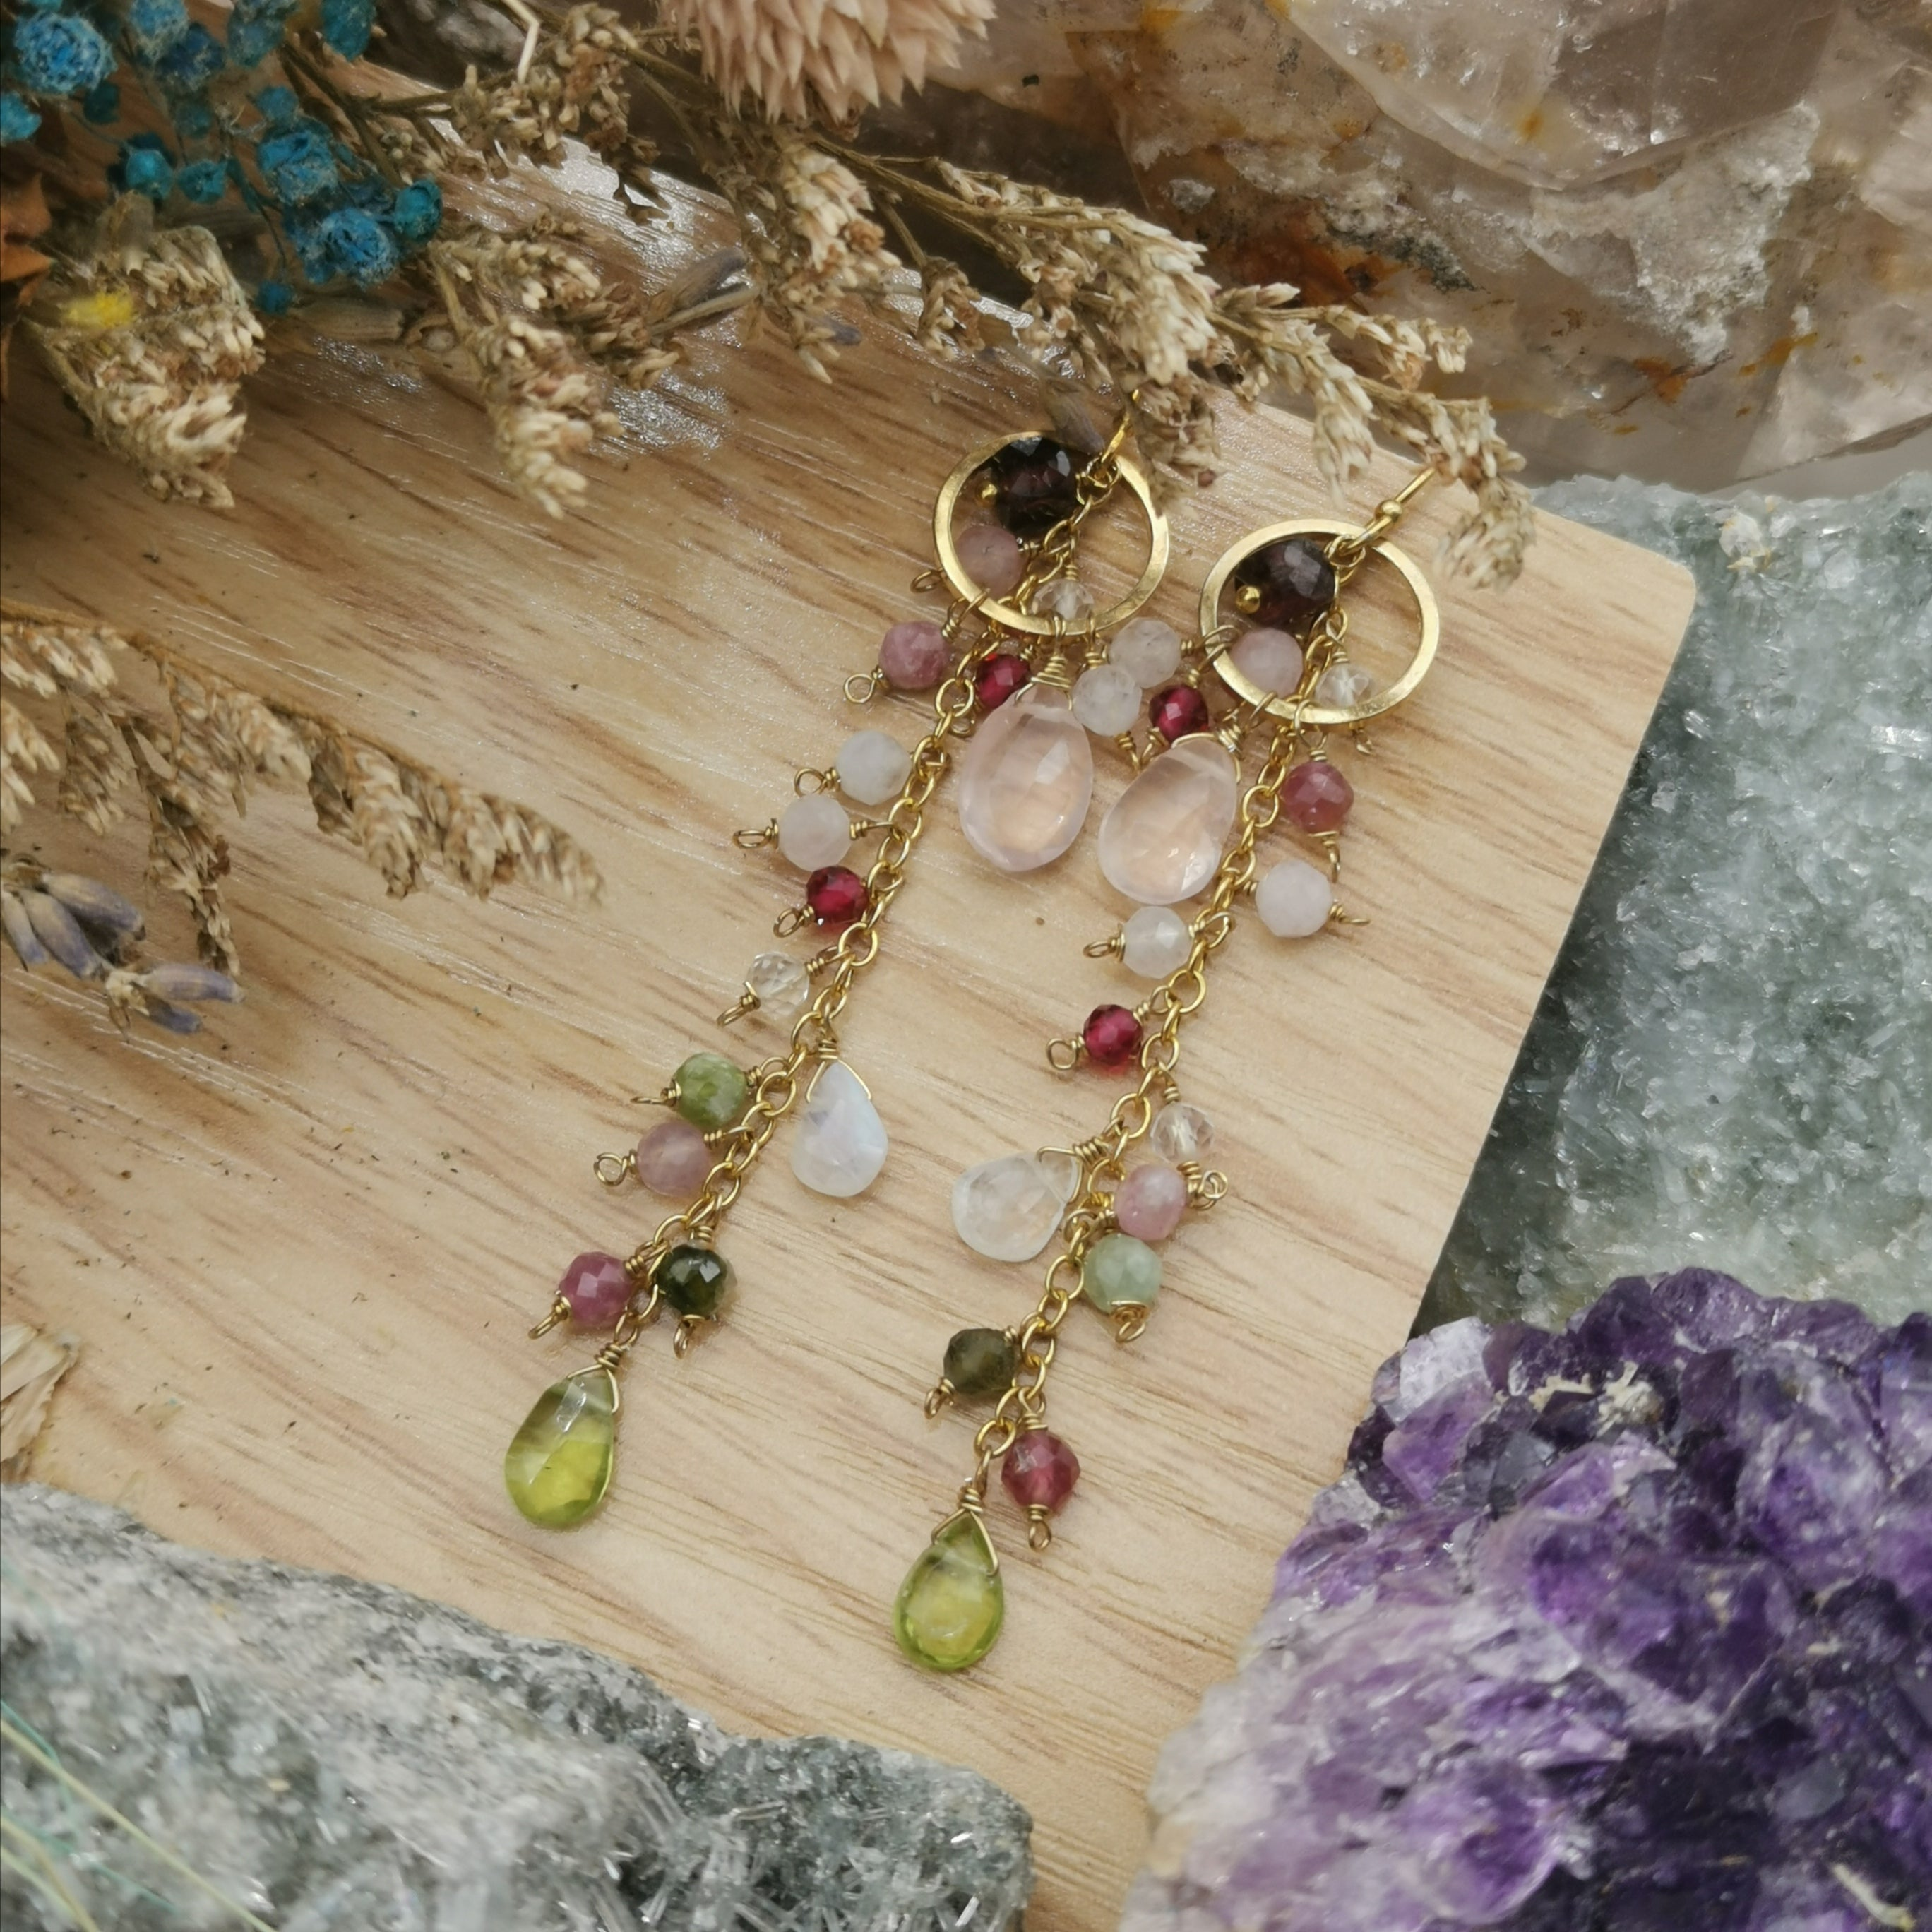 Laila (Elysian Earrings)